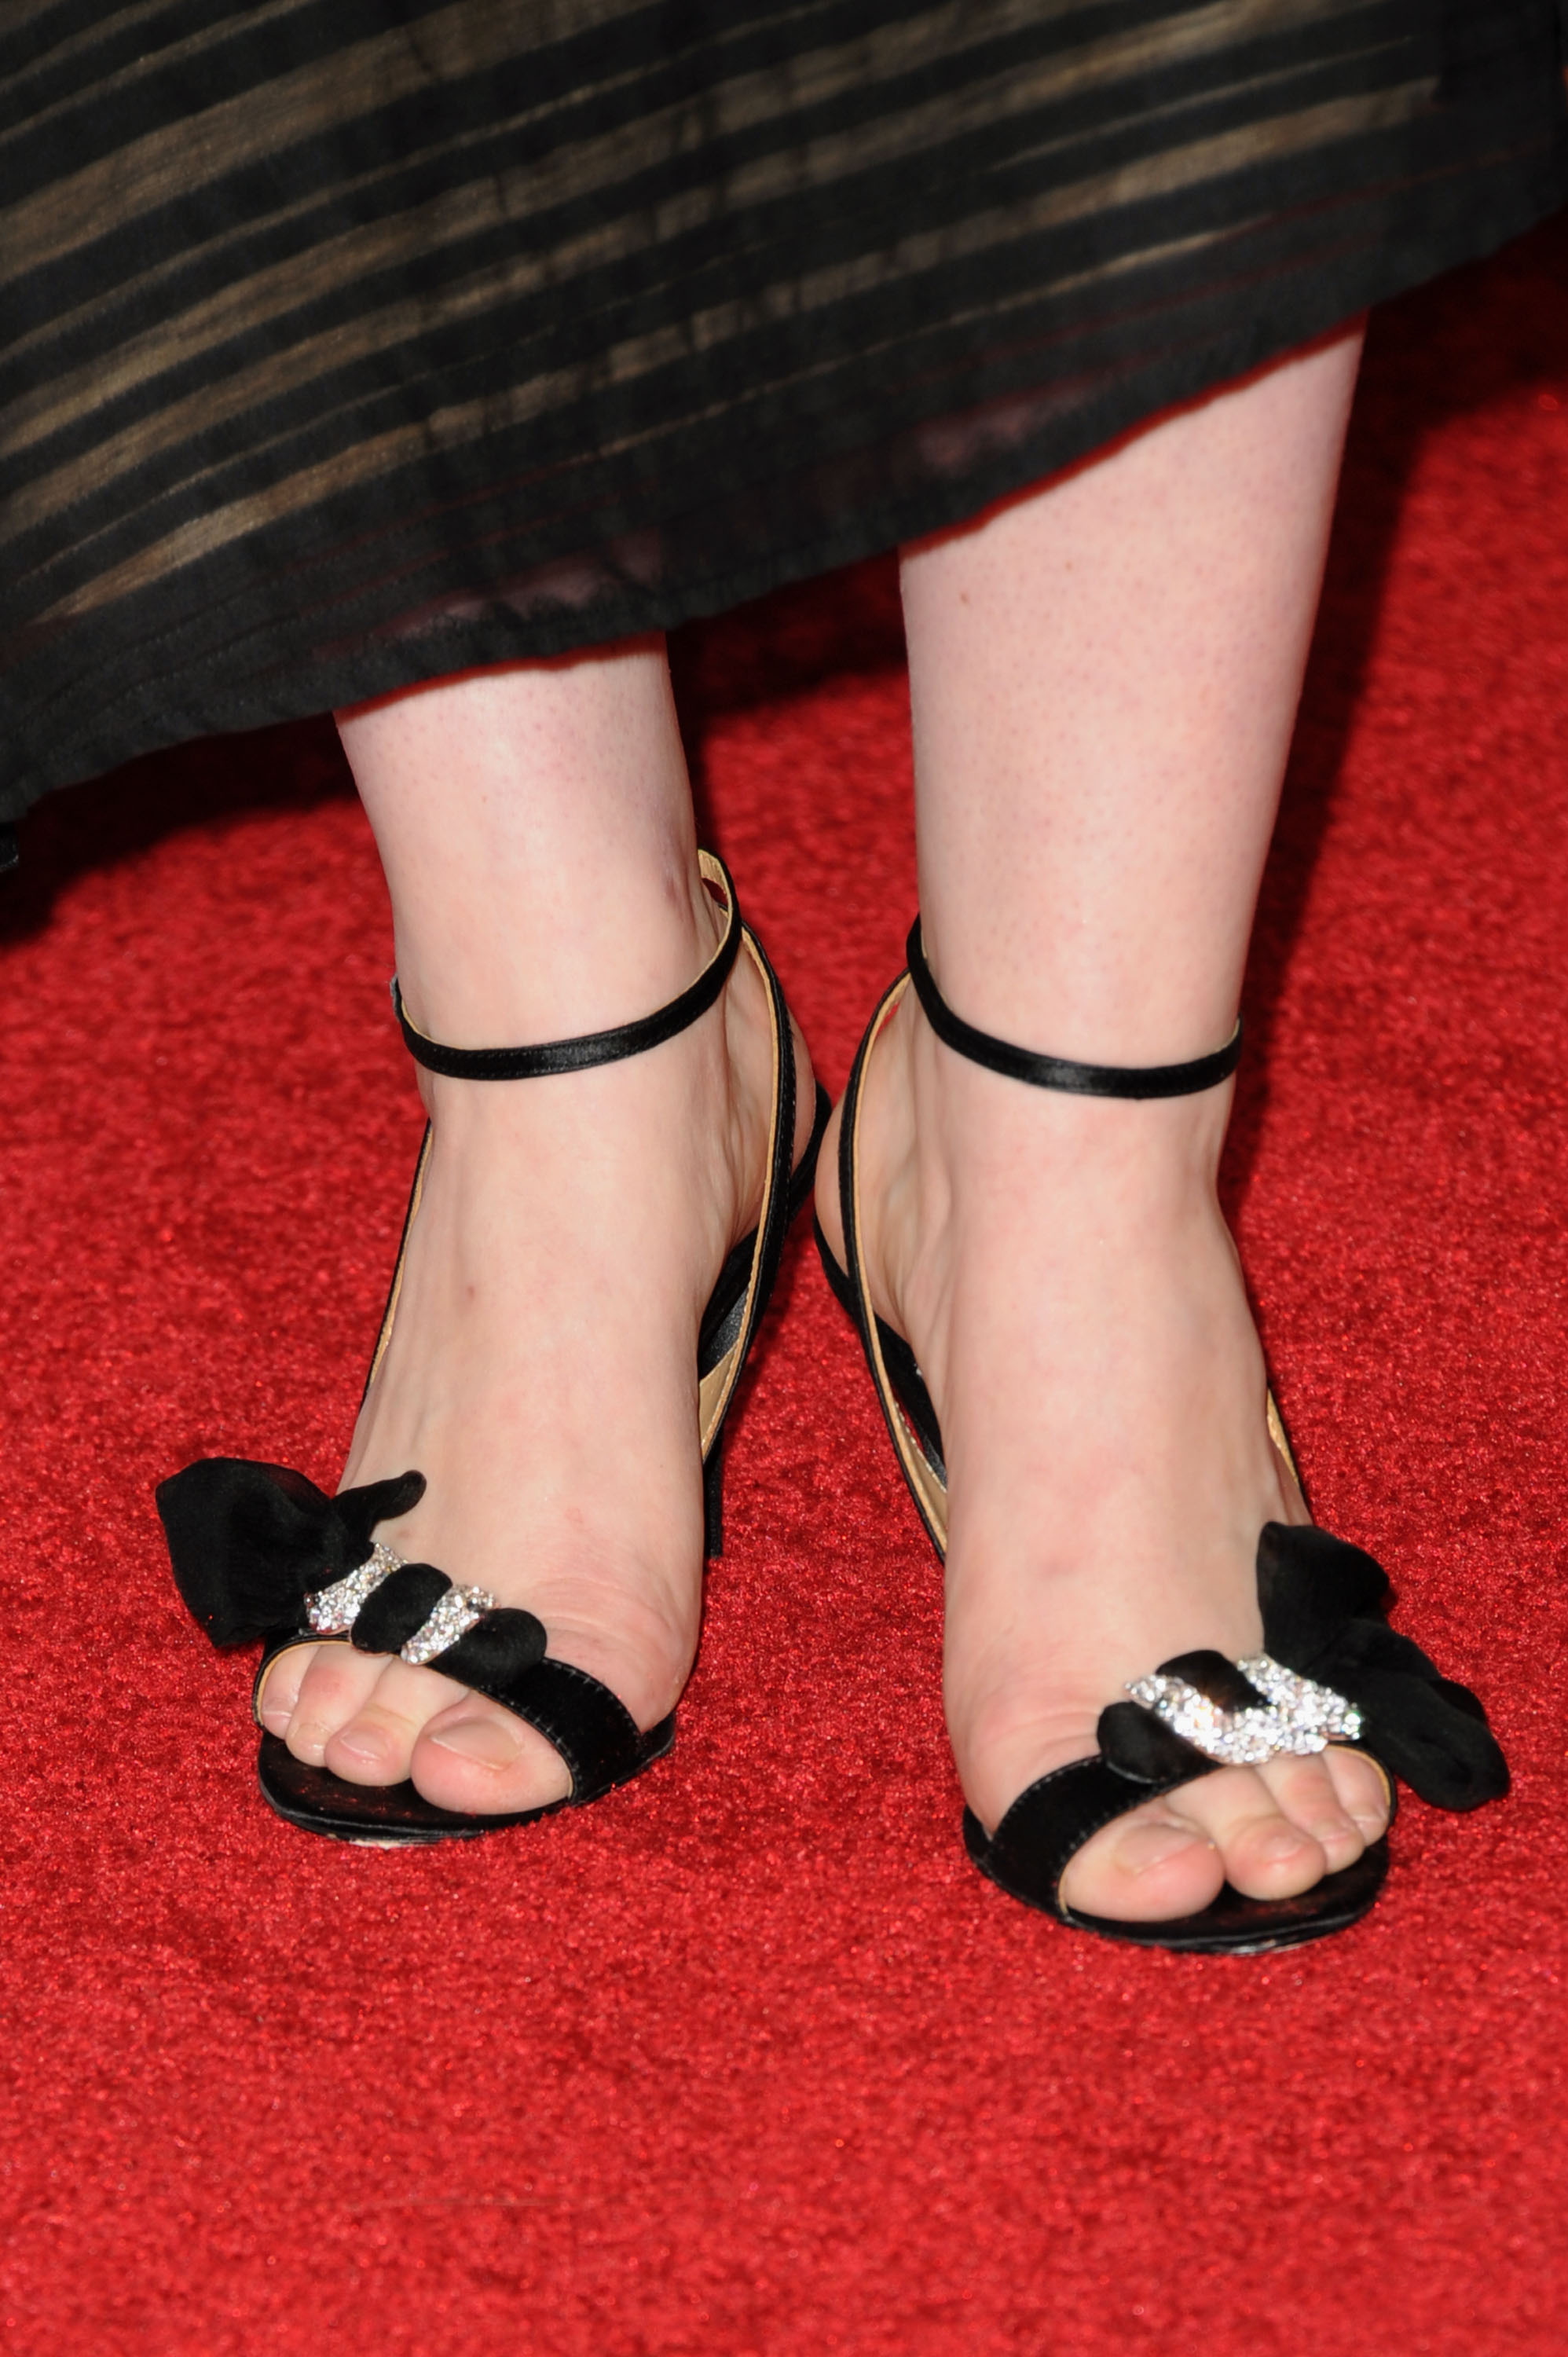 Jennette McCurdy Feet Images | Crazy Gallery